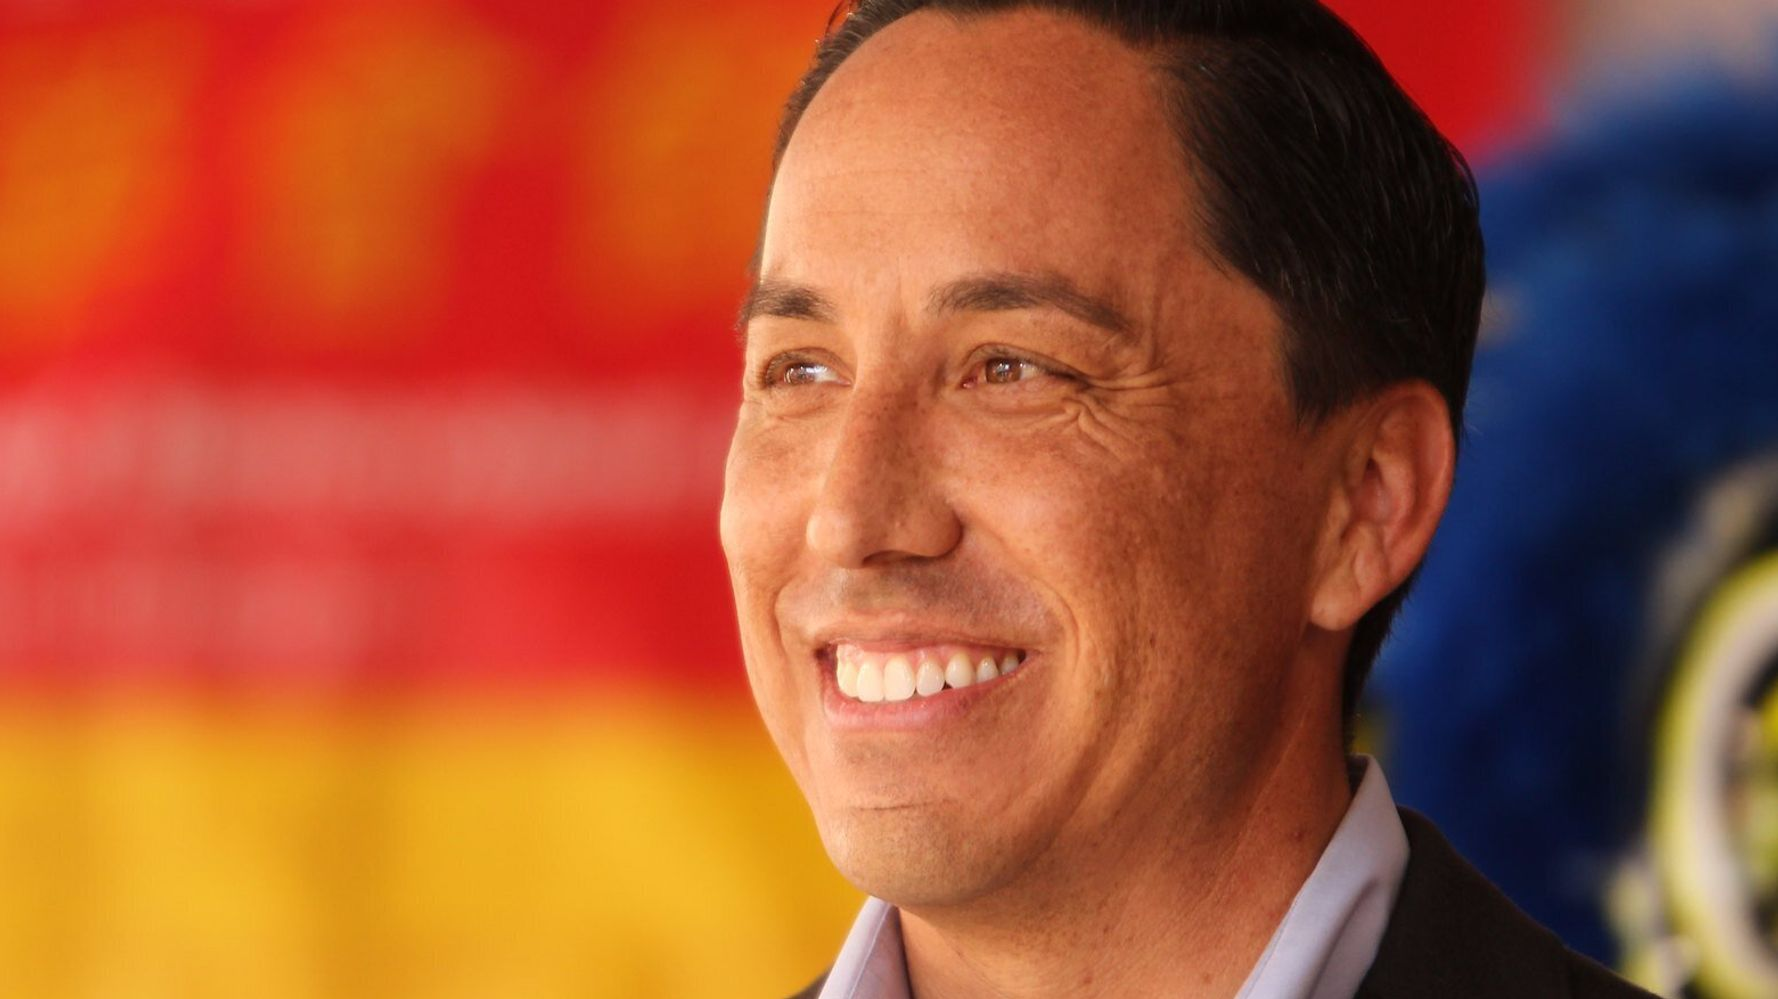 San Diego's First Gay Mayor Of Color Plans To Reshape America's 'Finest City'